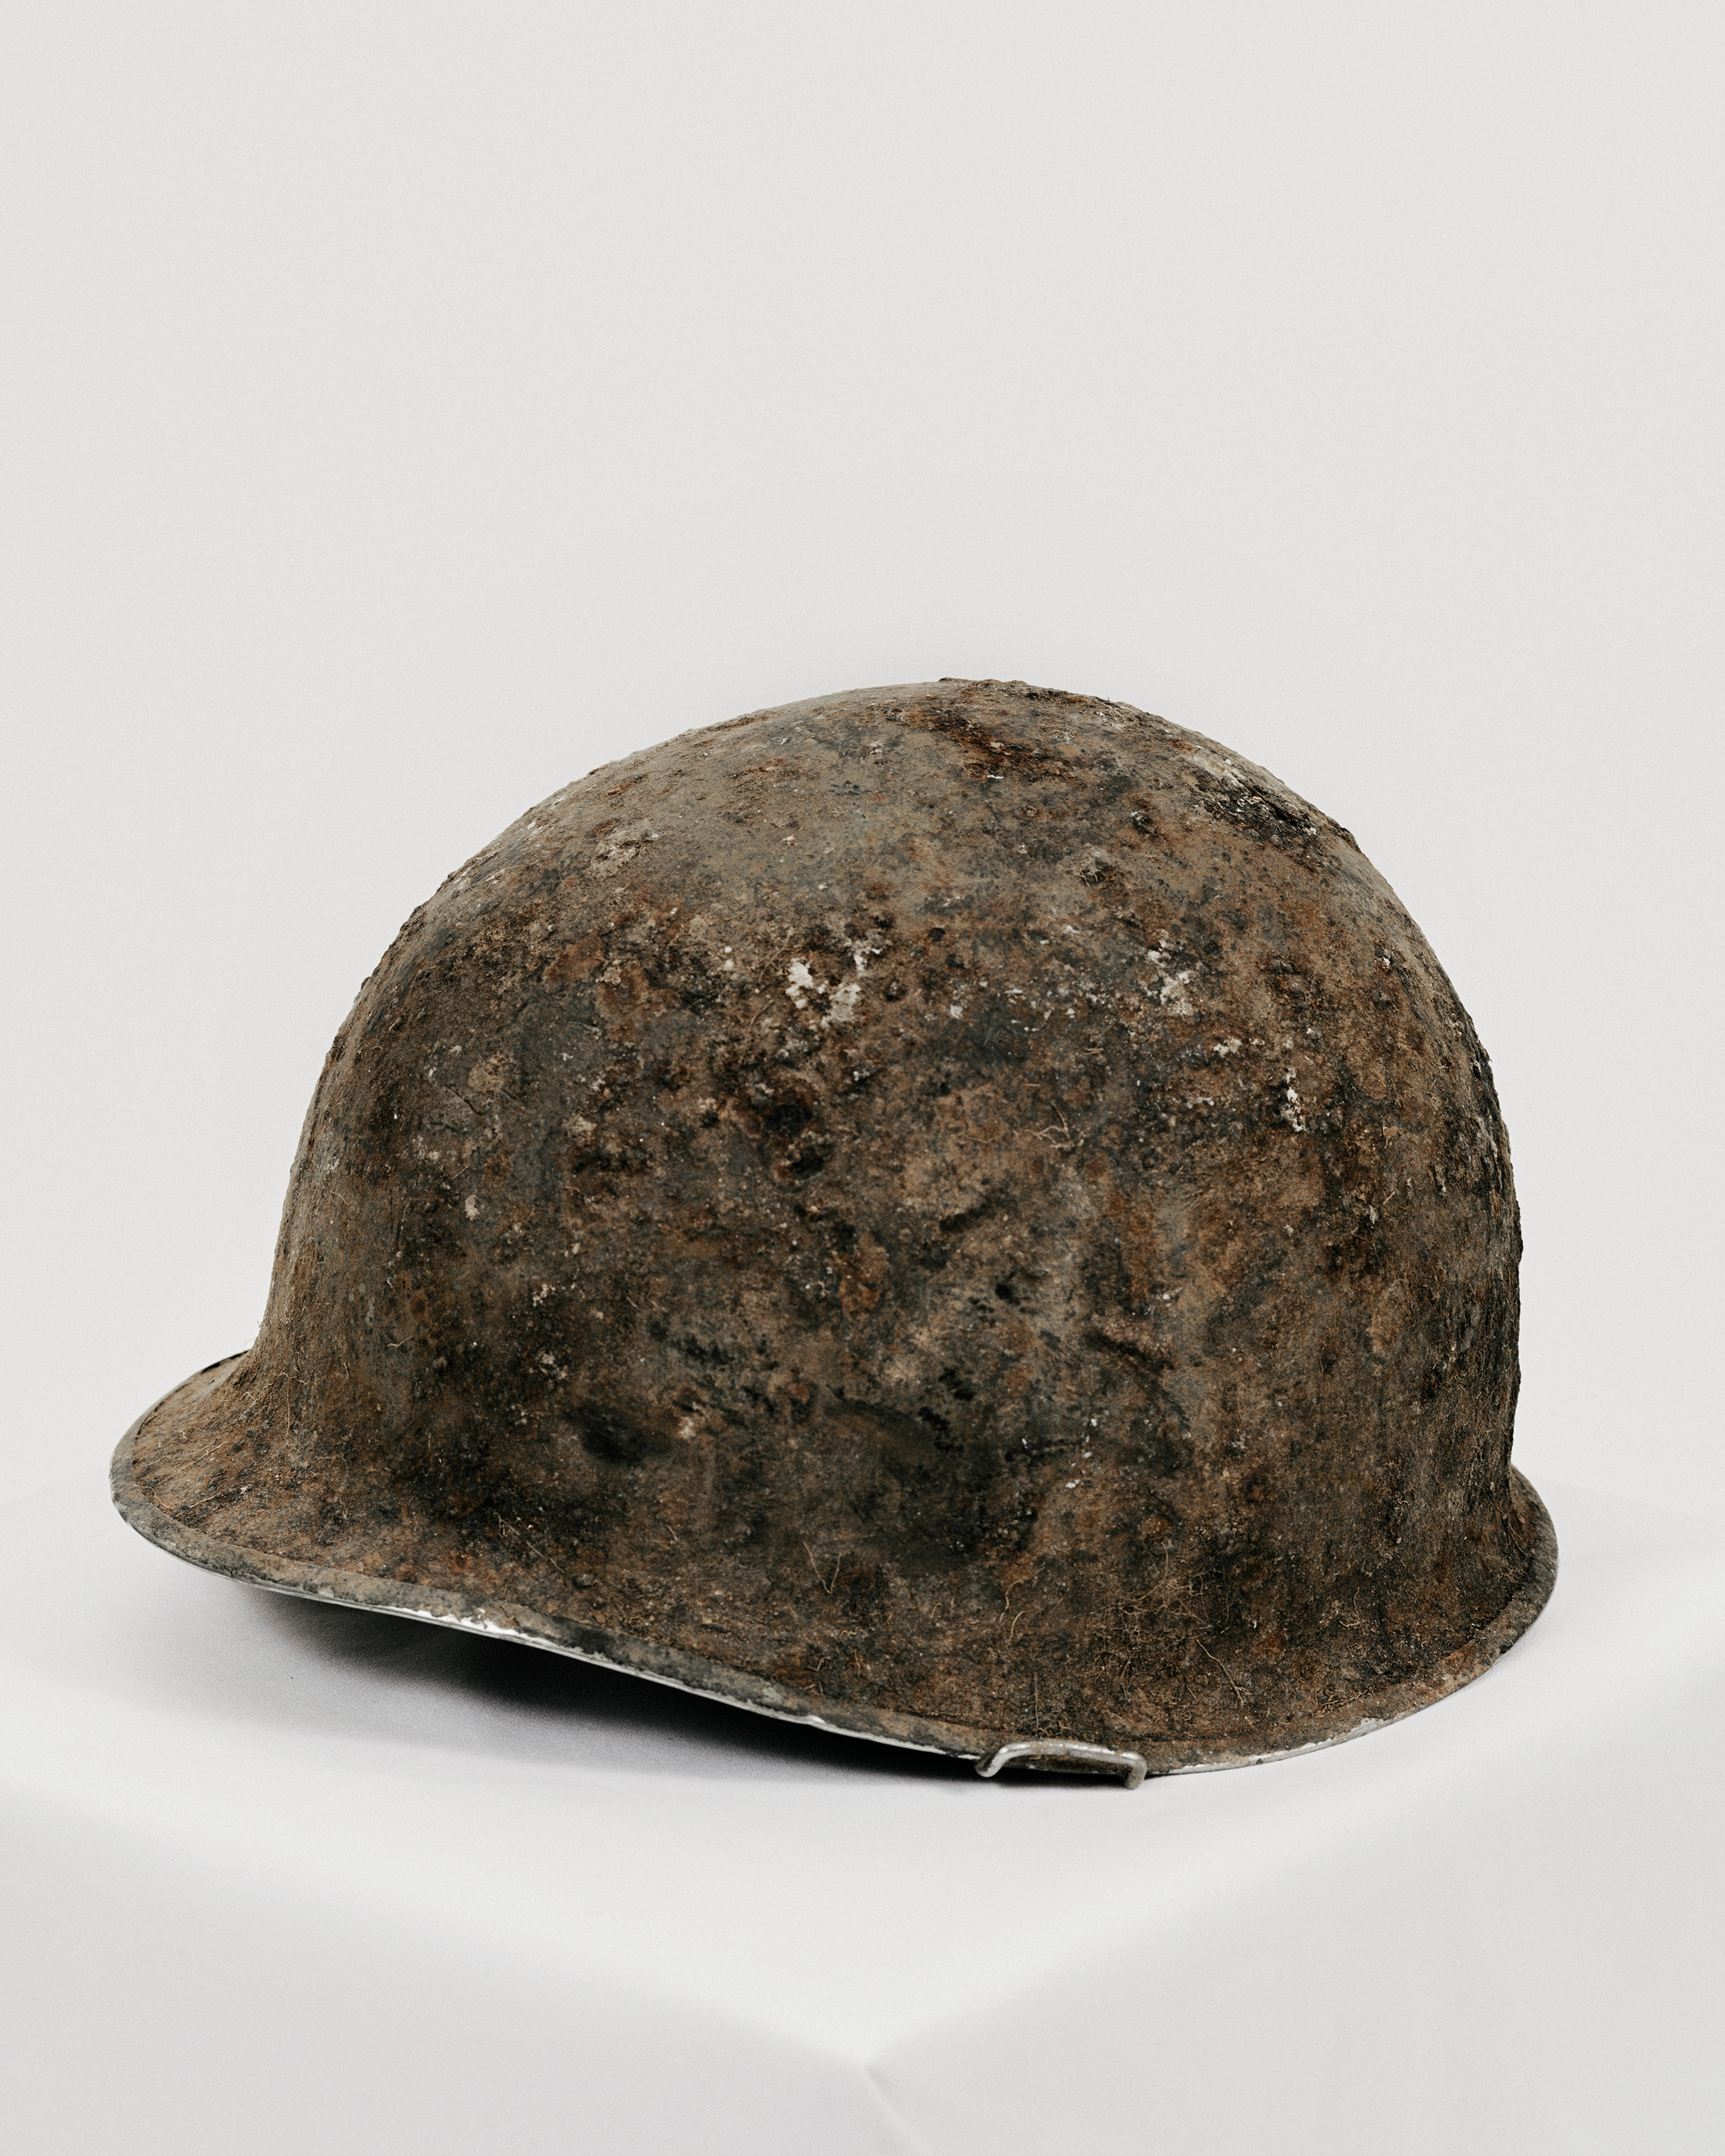 A helmet that was returned by North Korea in 2018.